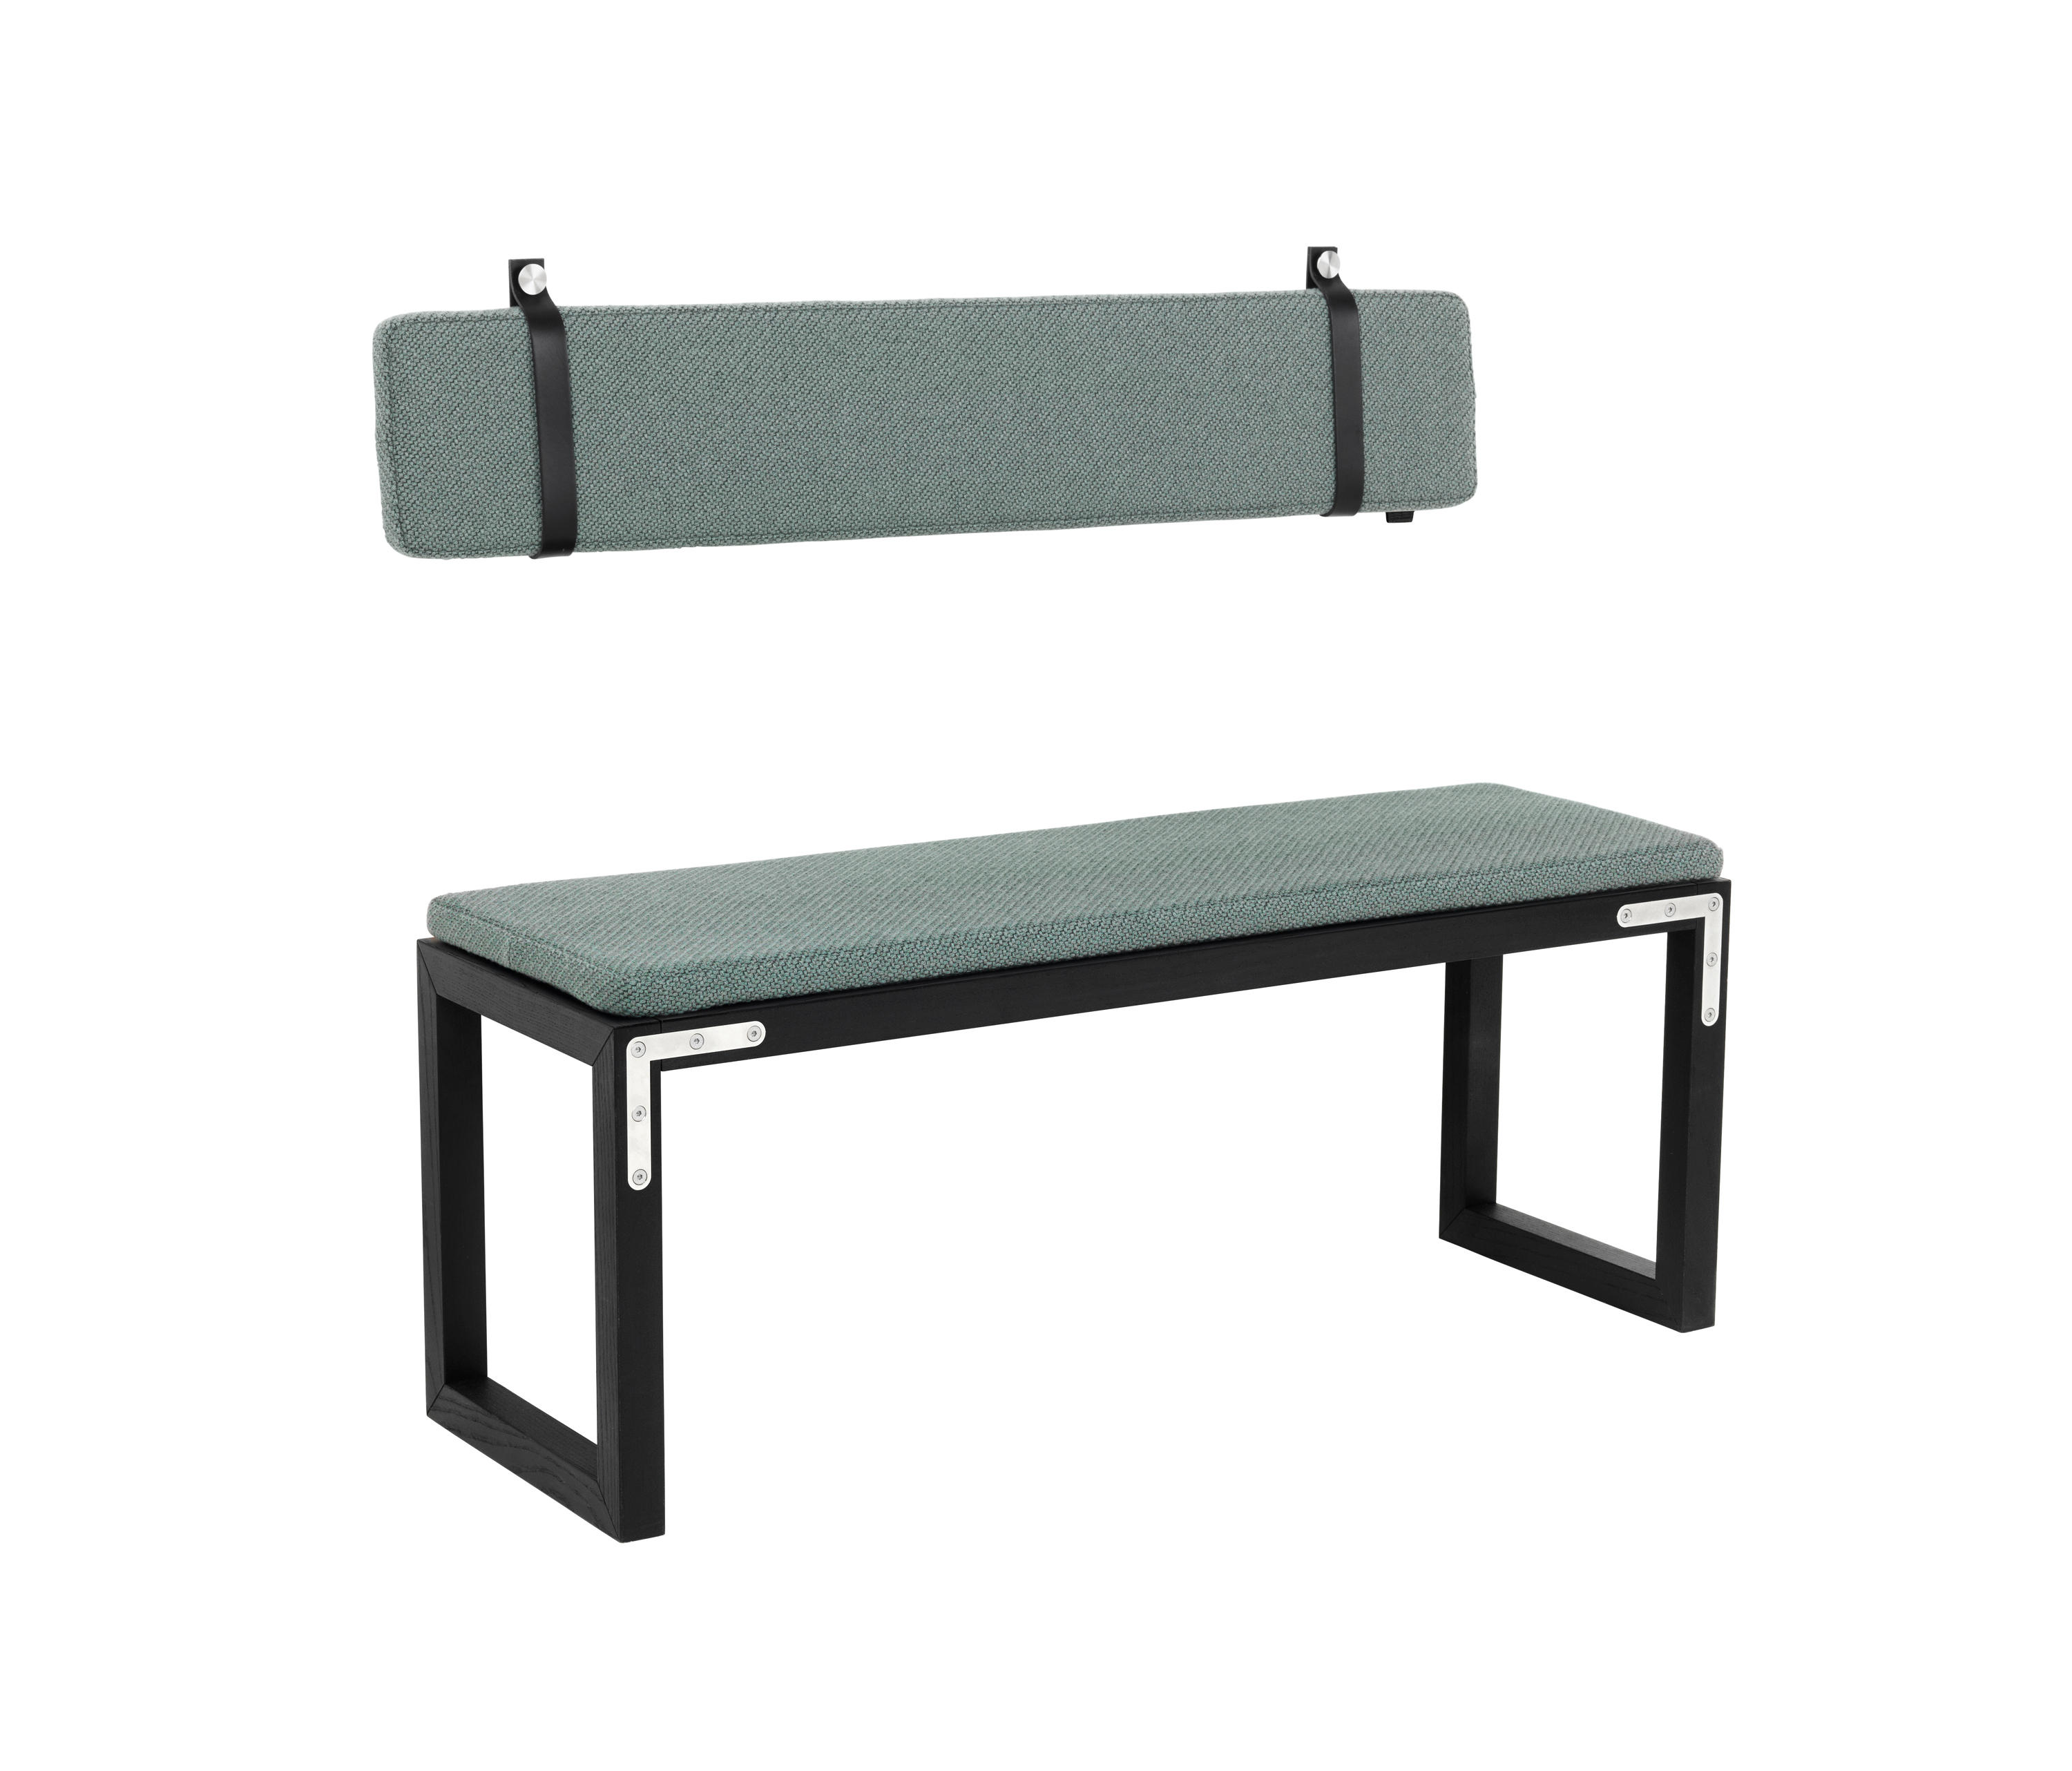 Surprising Conekt Bench Coda 2 Steel Brackets Architonic Caraccident5 Cool Chair Designs And Ideas Caraccident5Info